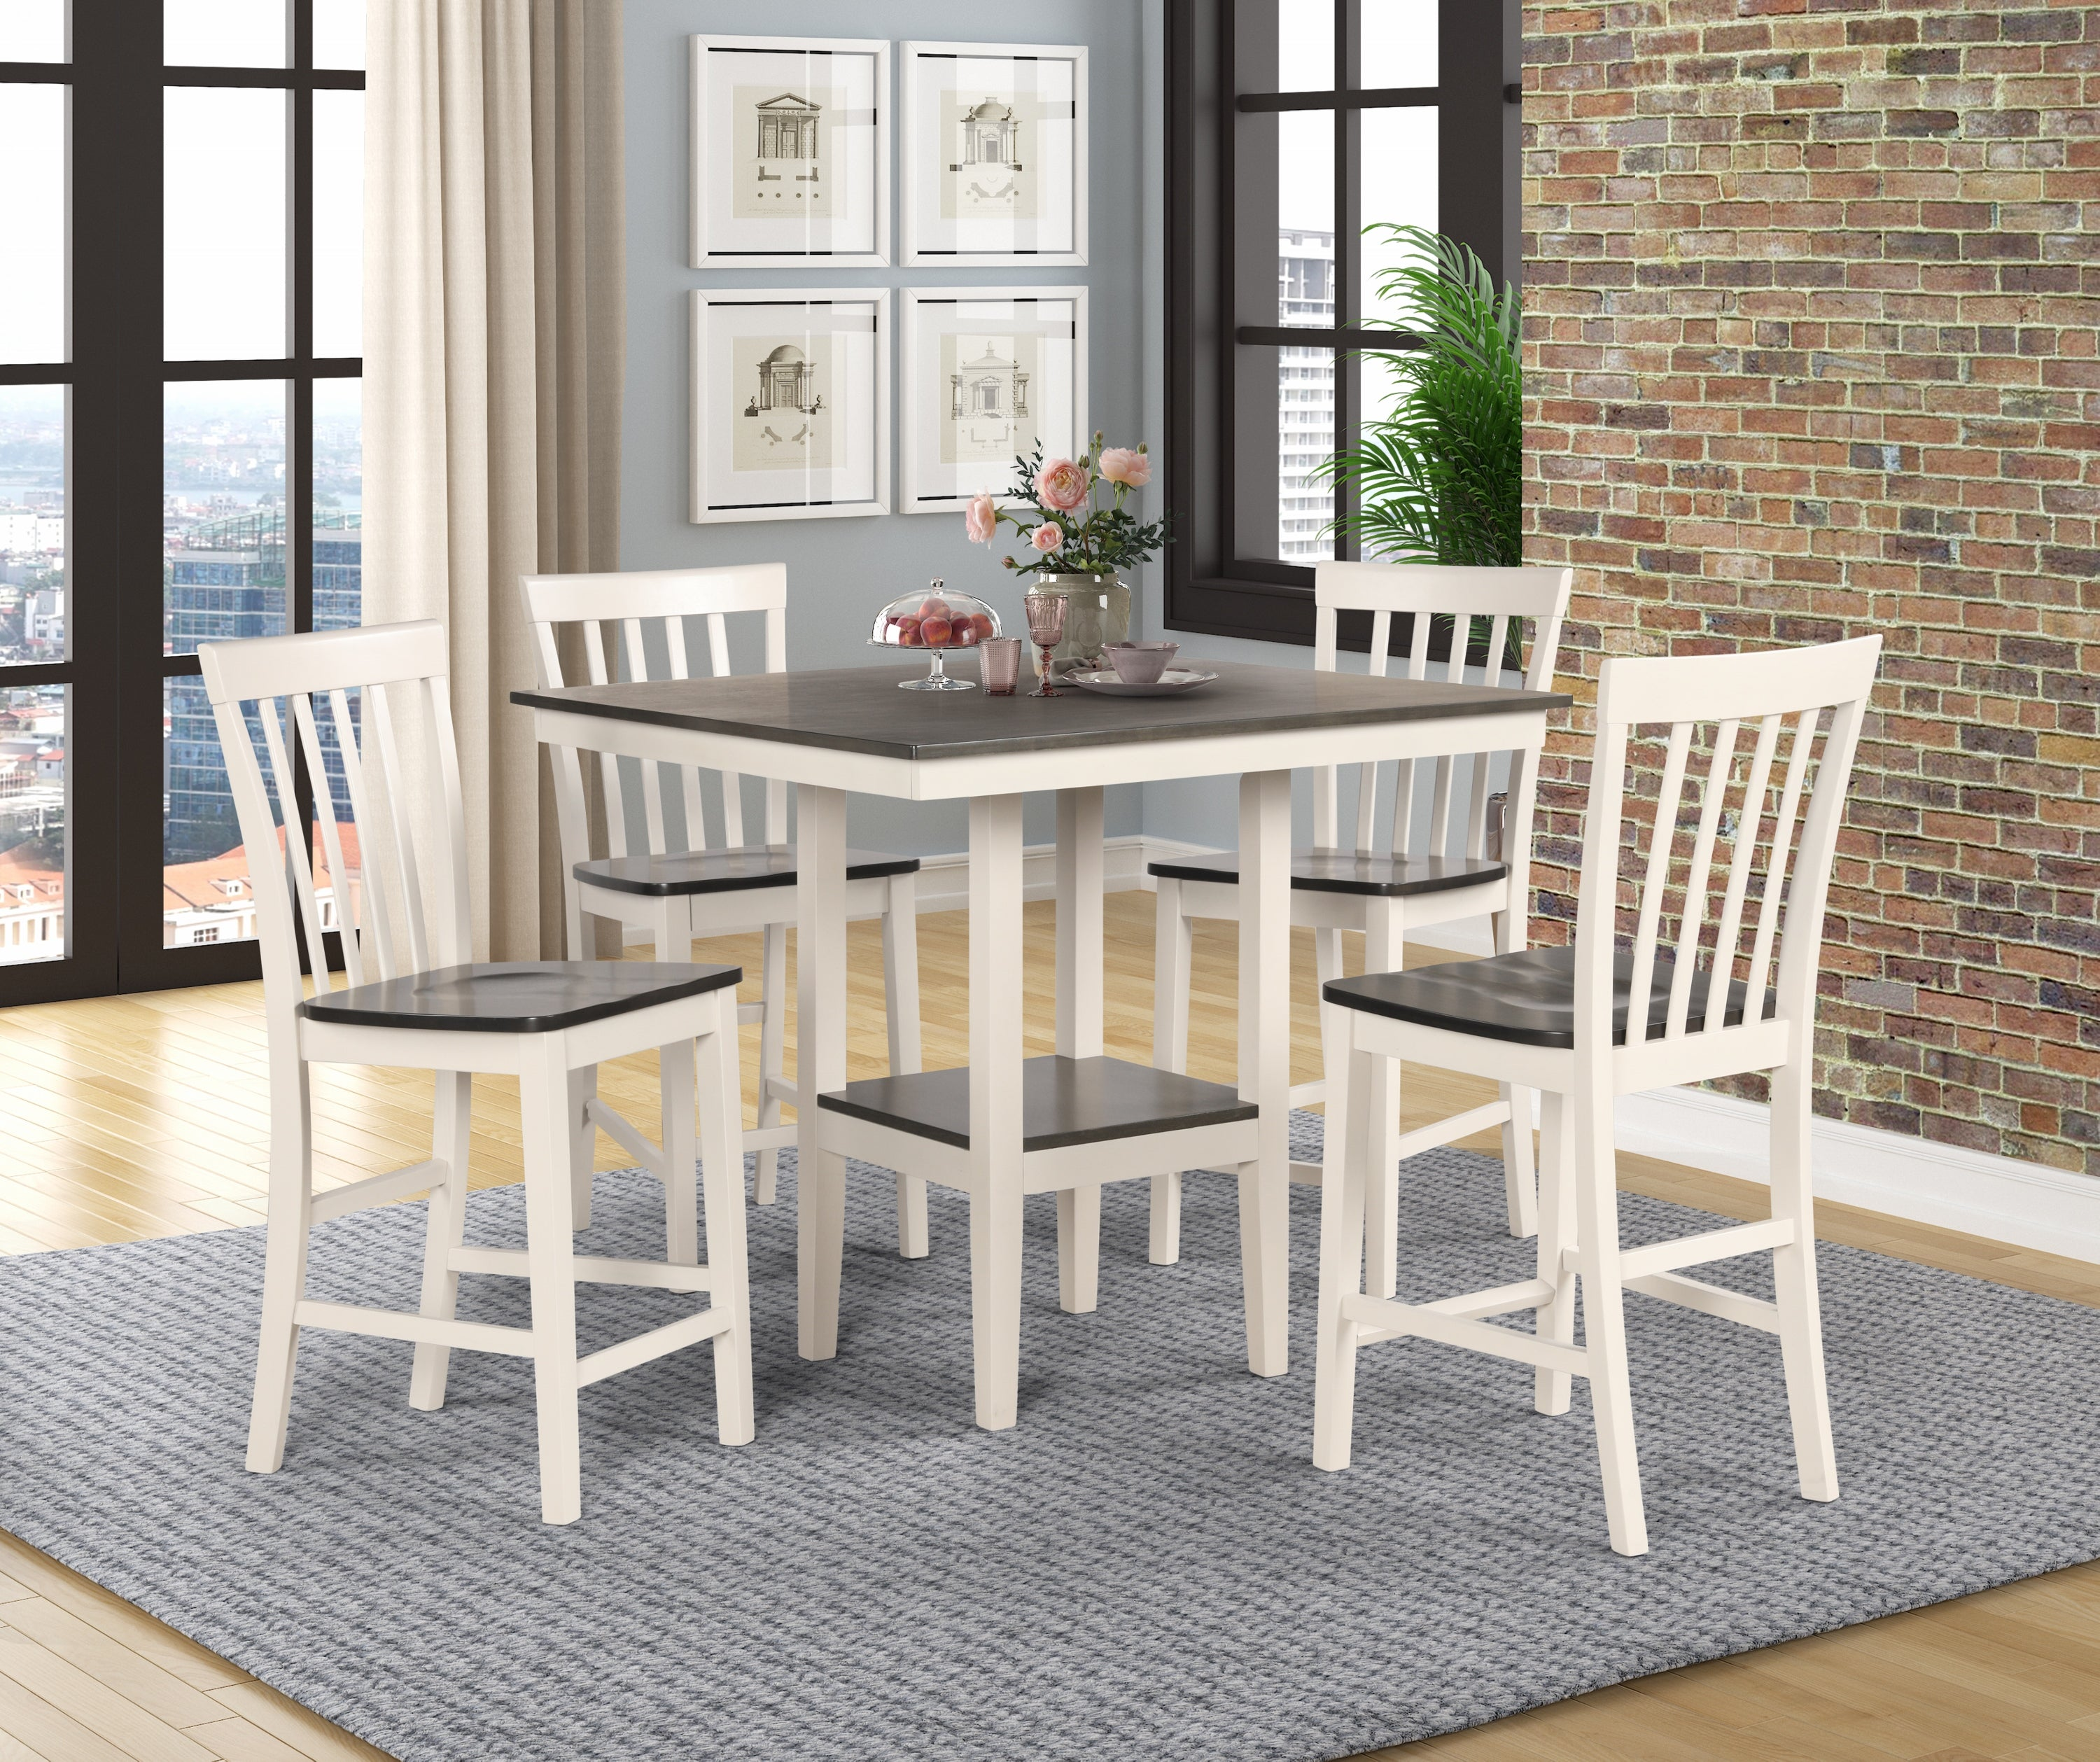 Farmhouse Cream and Gray Counter Dining Set